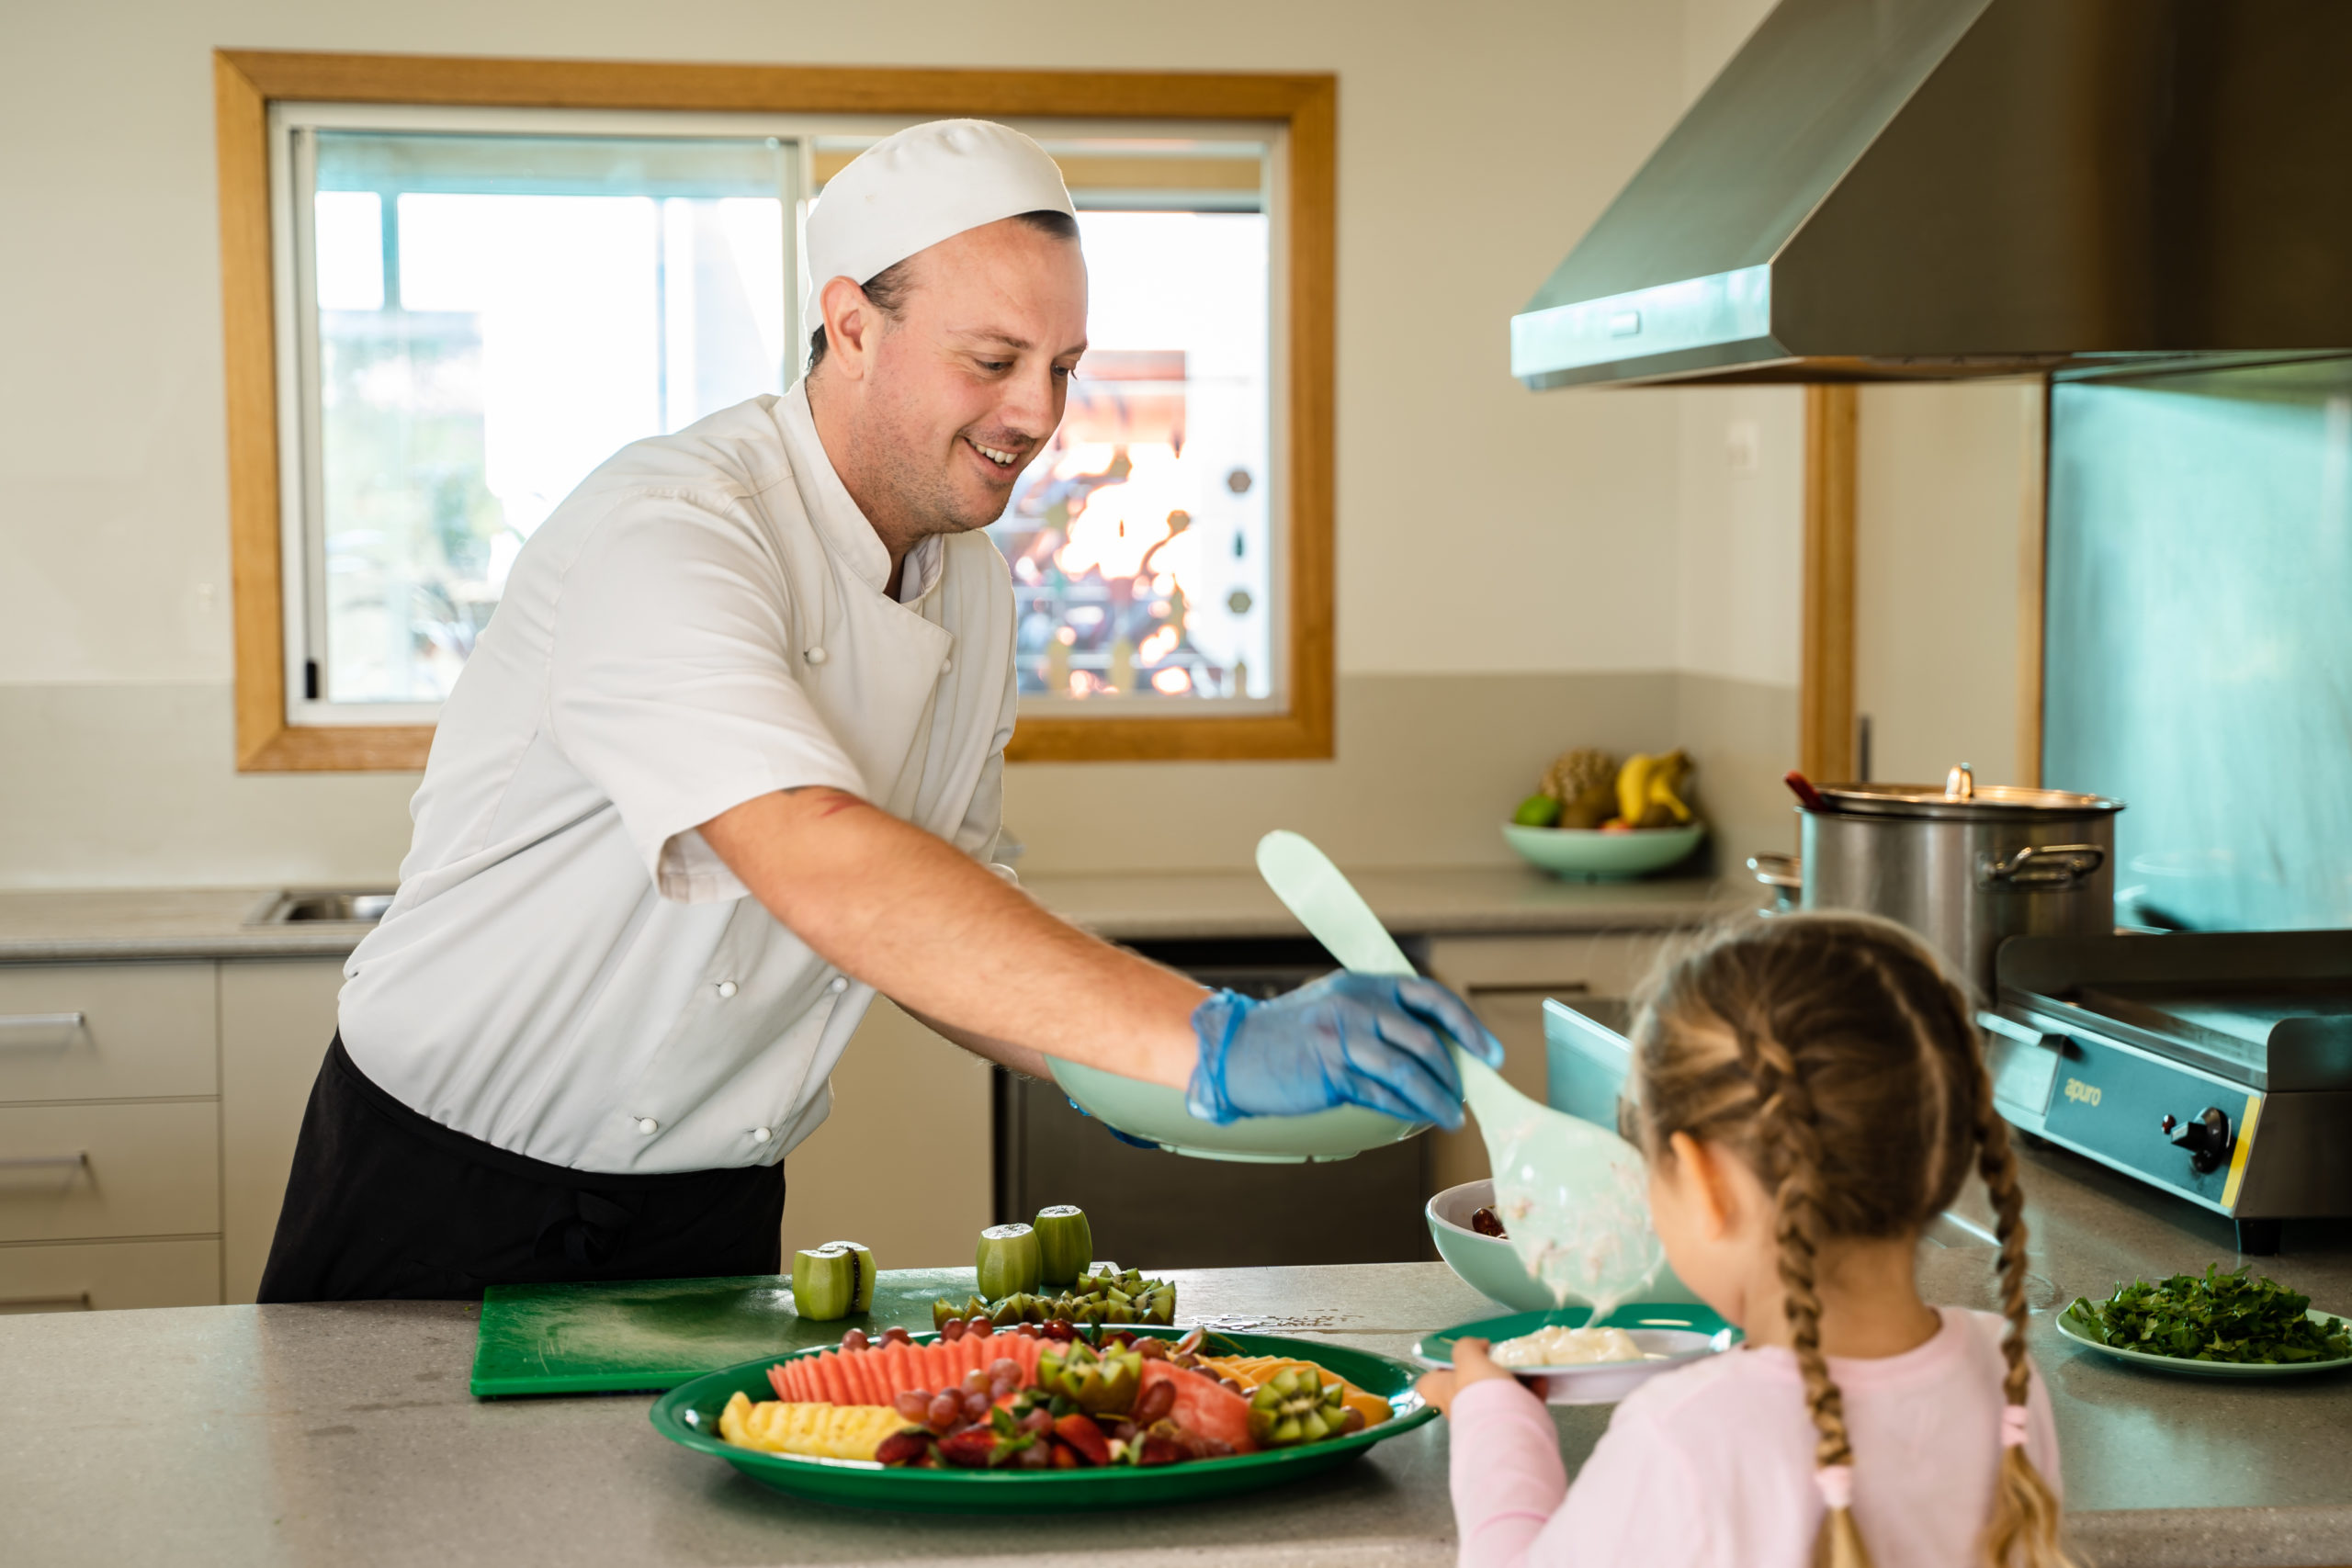 Get your bake on at edge early learning